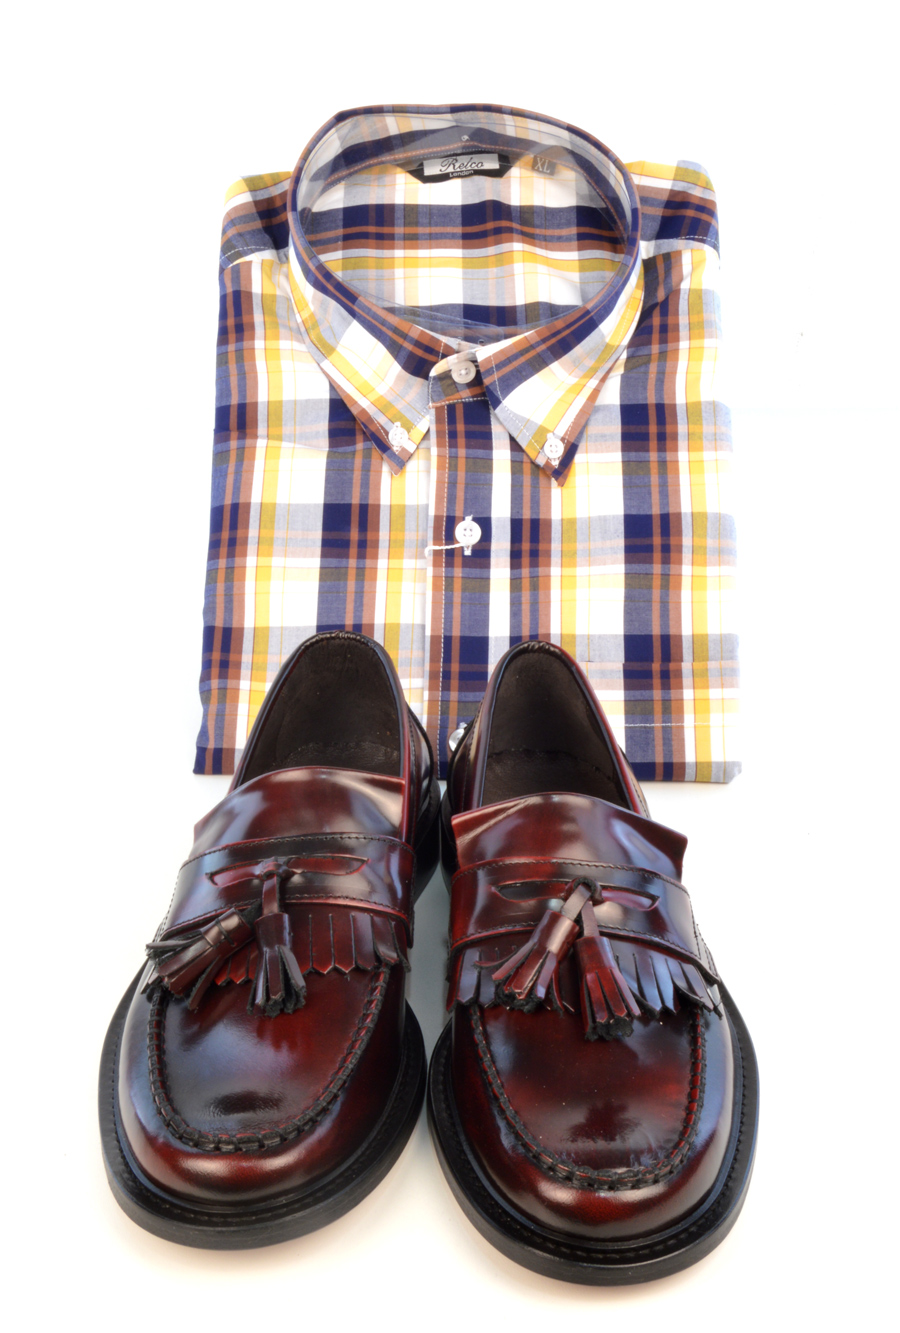 modshoes-oxblood-tassel-loafers-the-prince-with-check-shirt